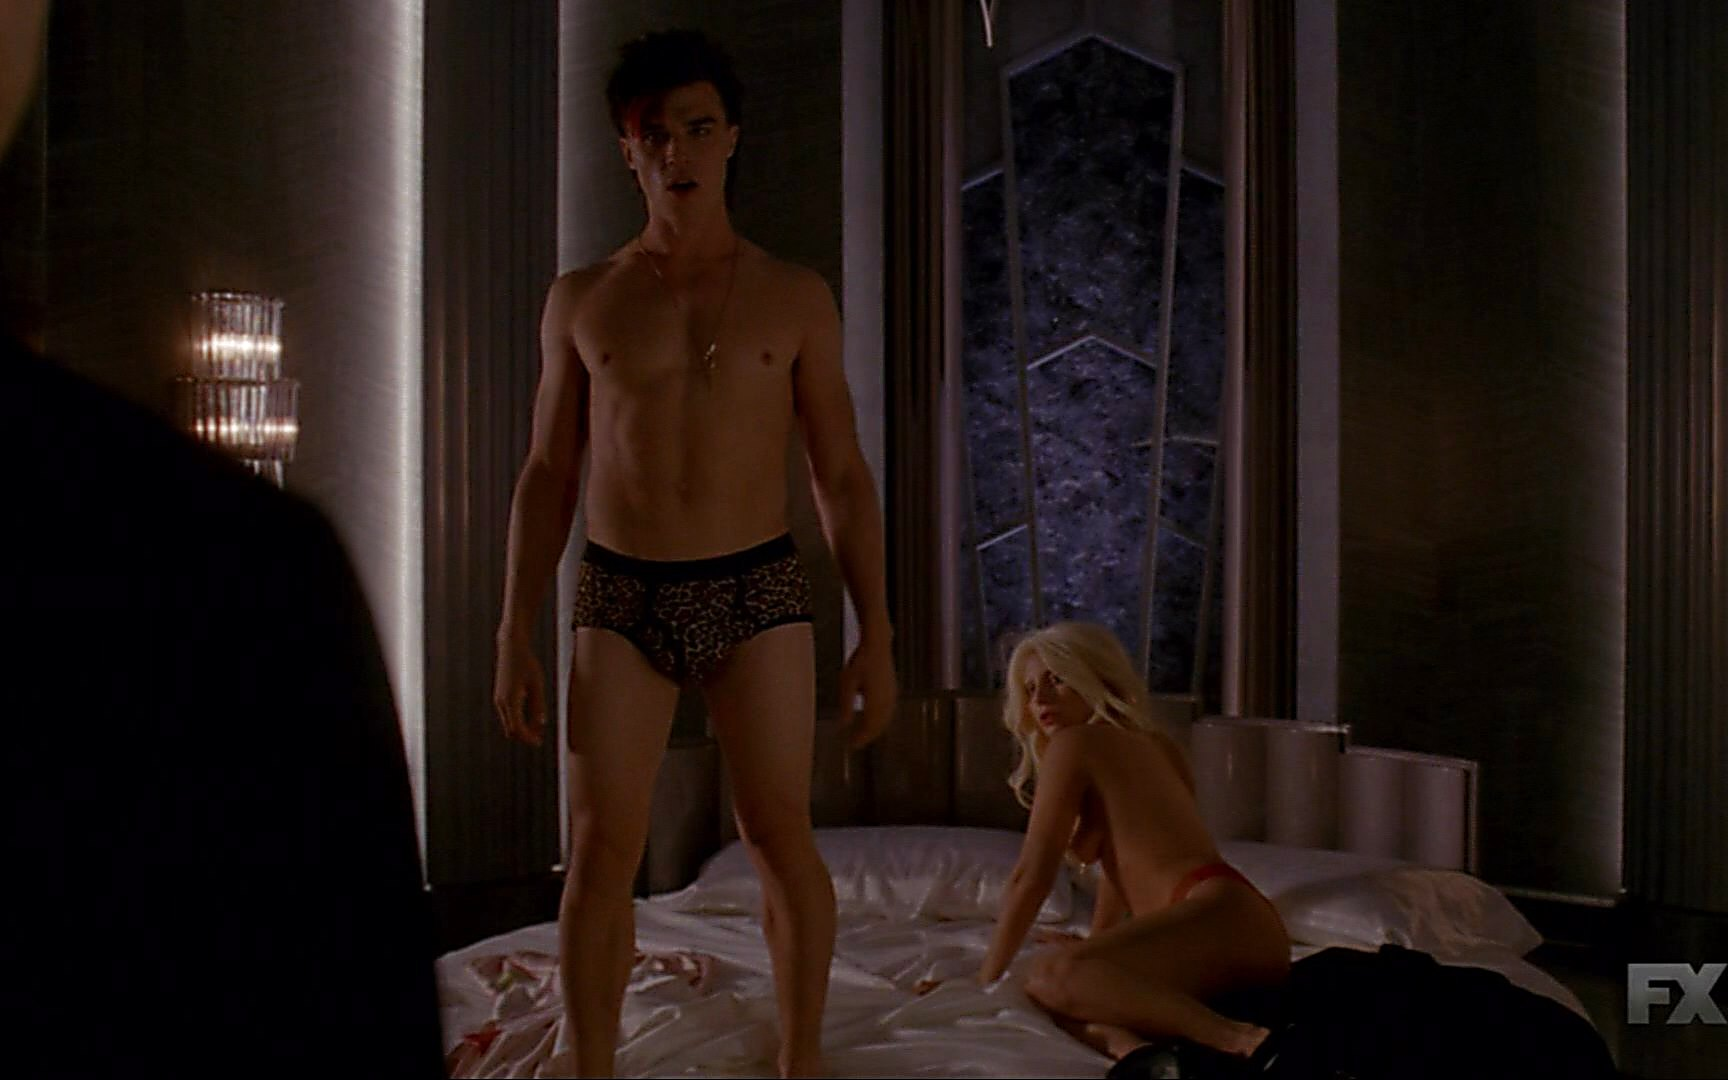 Finn Wittrock sexy shirtless scene October 18, 2015, 4pm